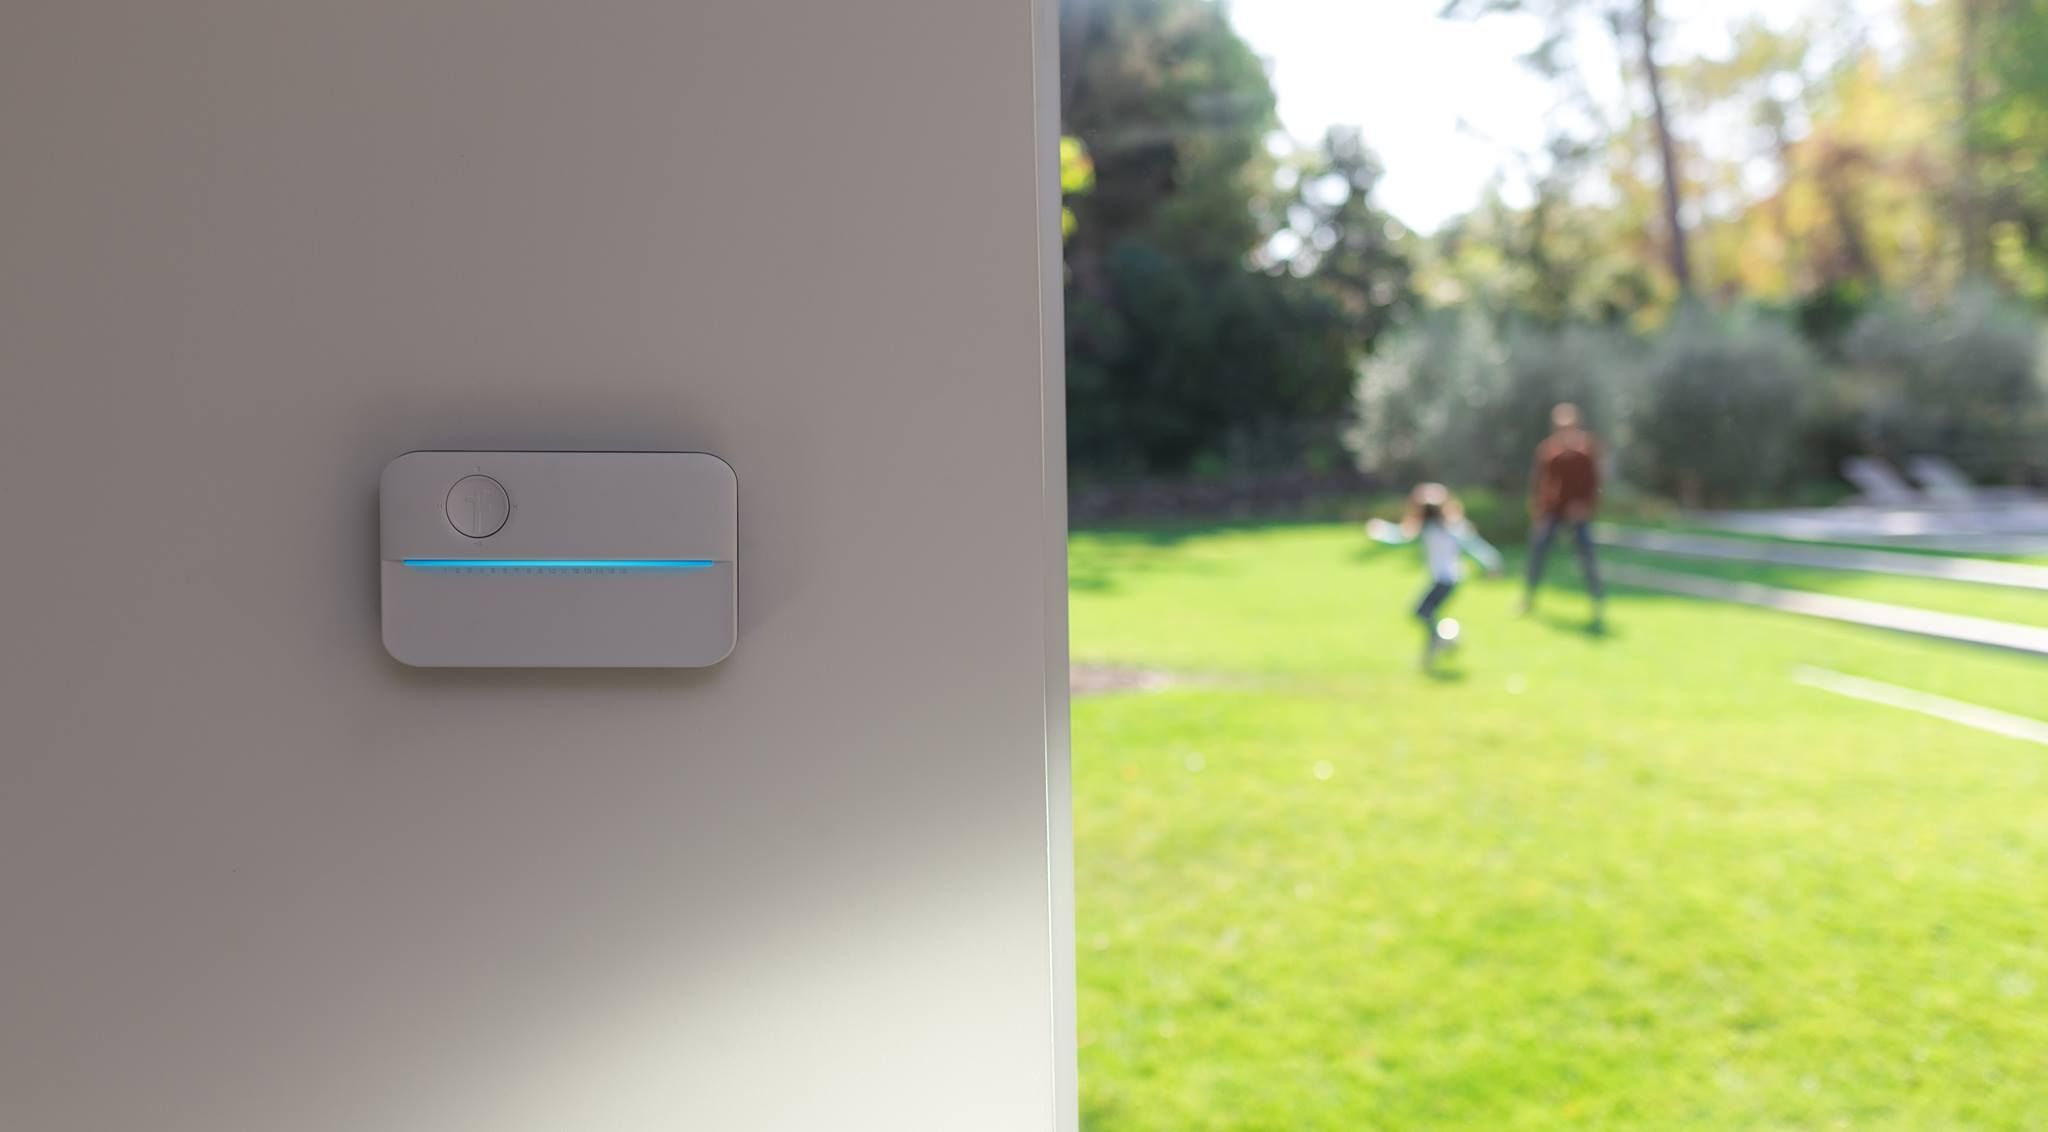 This Clever Gadget Turns Your Existing Sprinkler System Into a Smart, Voice-Controlled Sprinkler